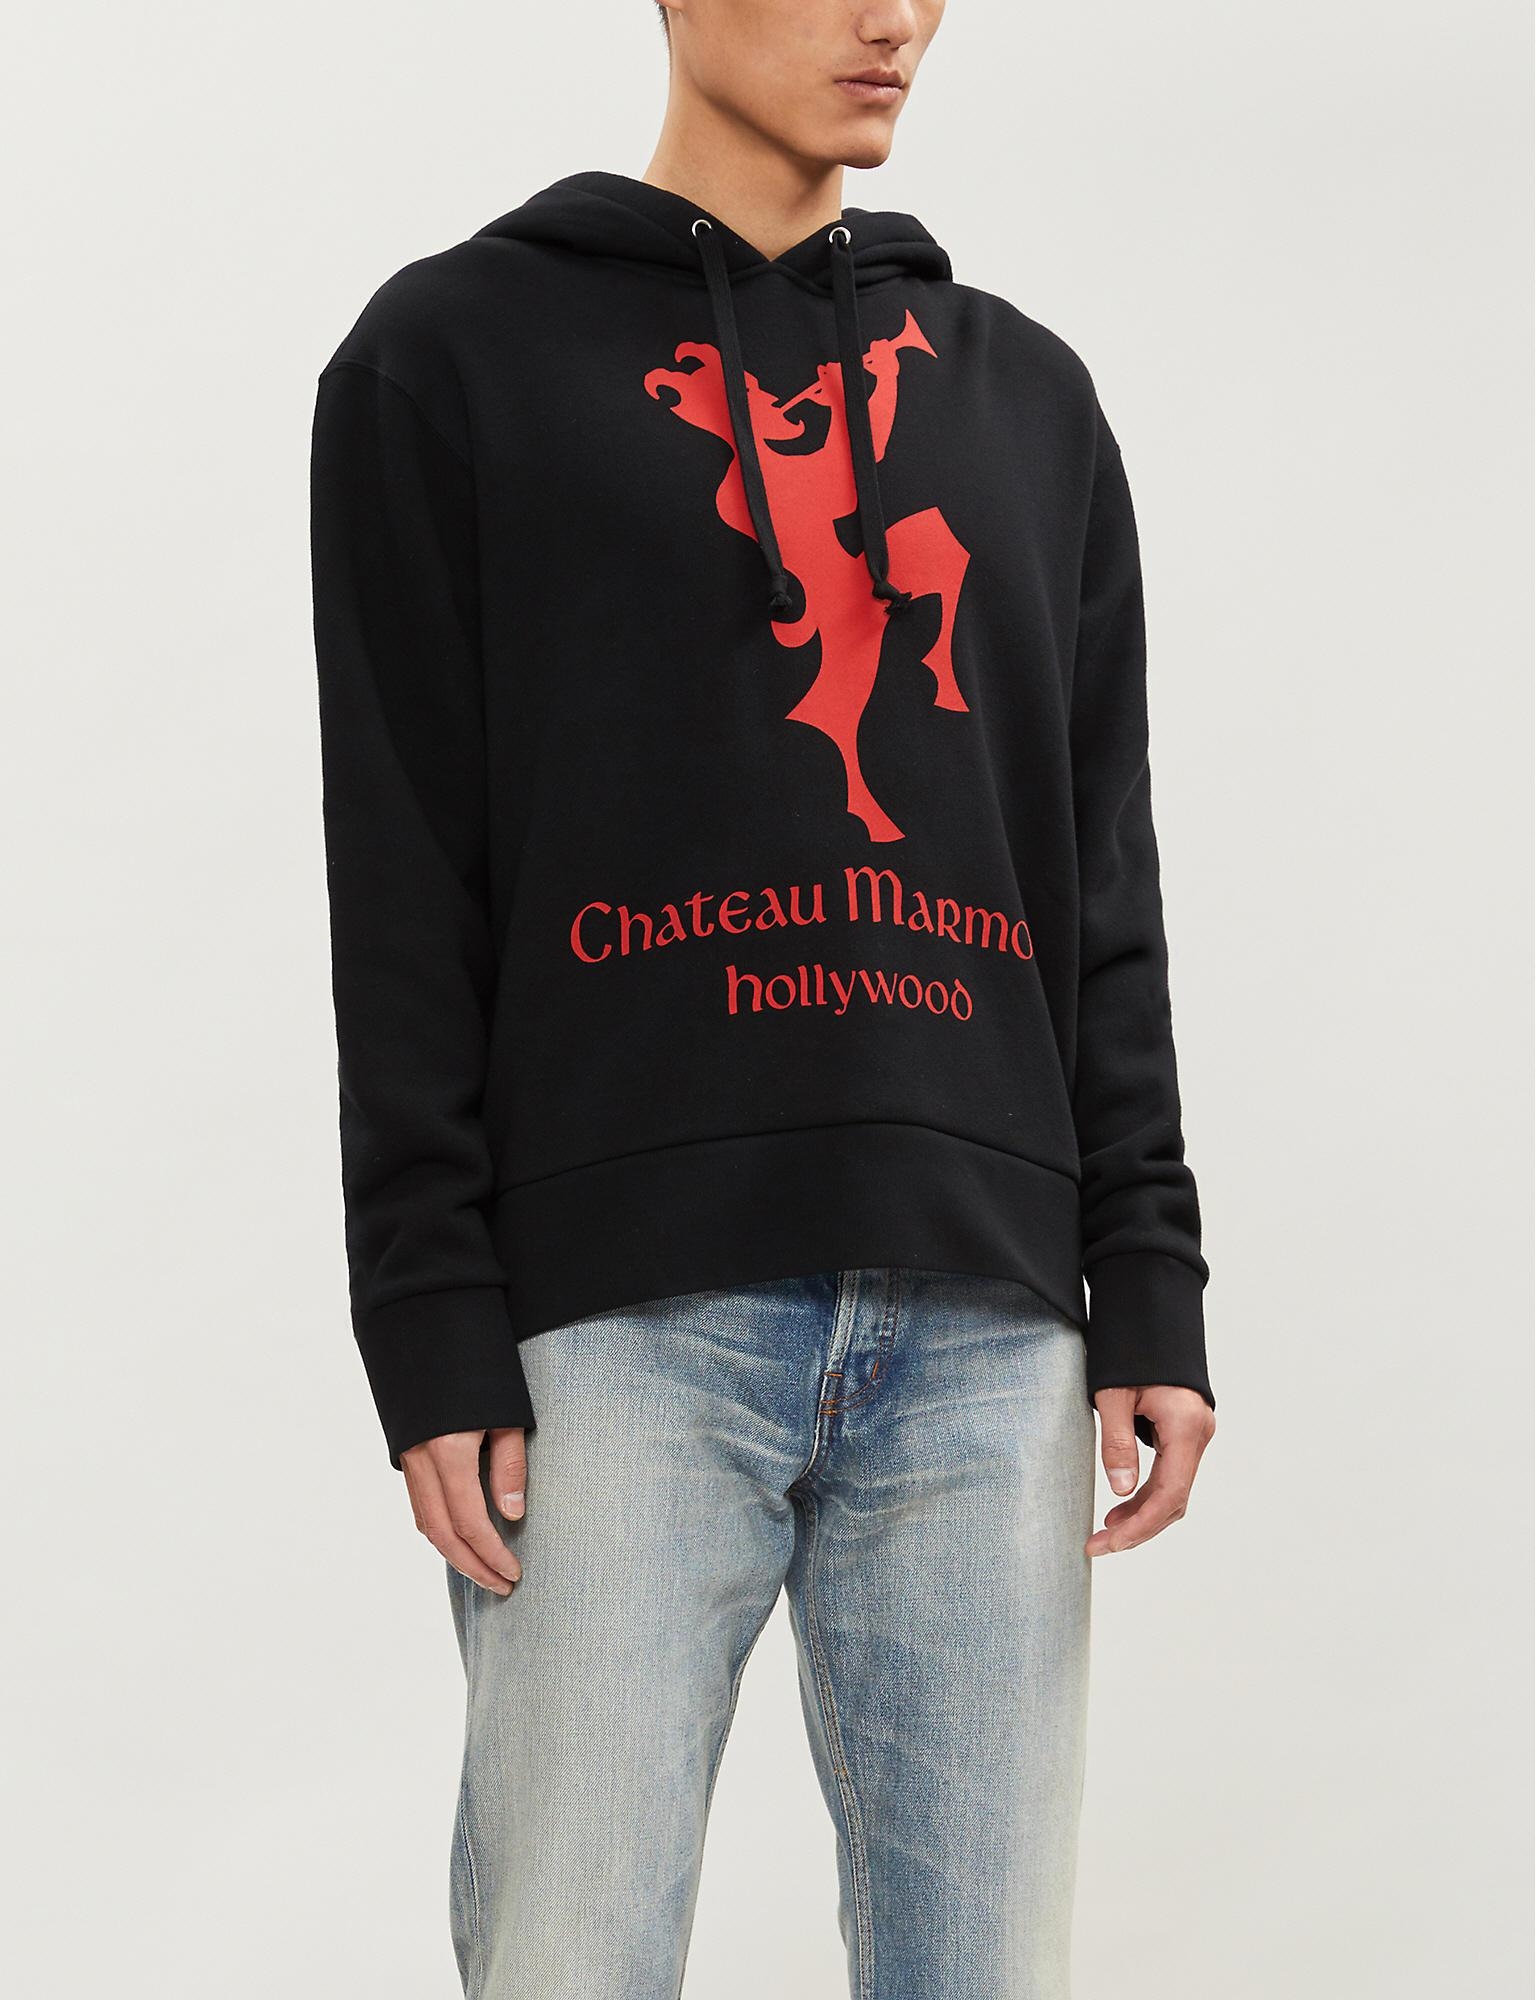 13085bdf52d6 Gucci Black And Red Chateau Marmont Hoodie in Black for Men - Save ...